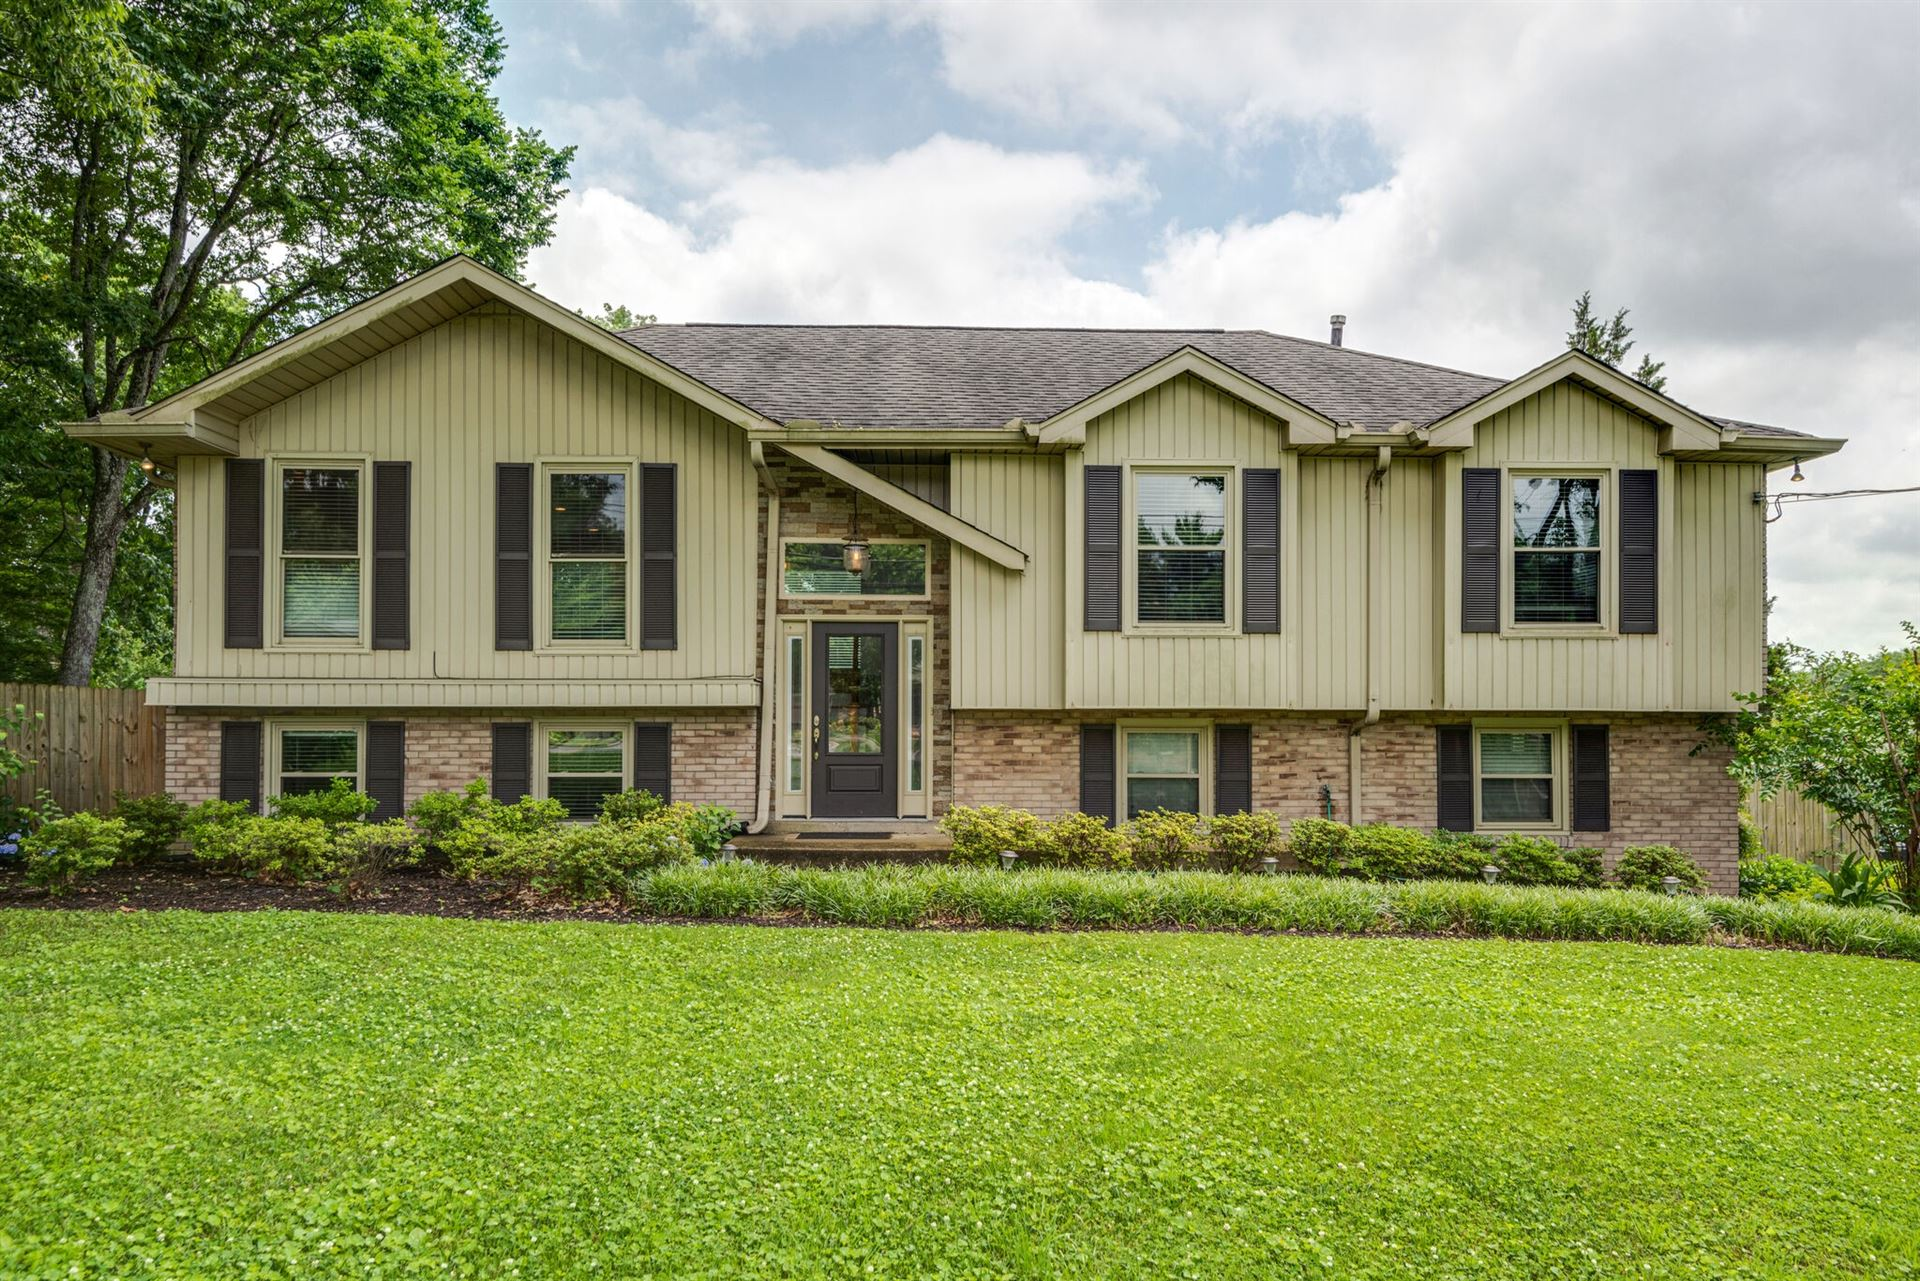 Photo of 8137 Moores Ln, Brentwood, TN 37027 (MLS # 2262355)